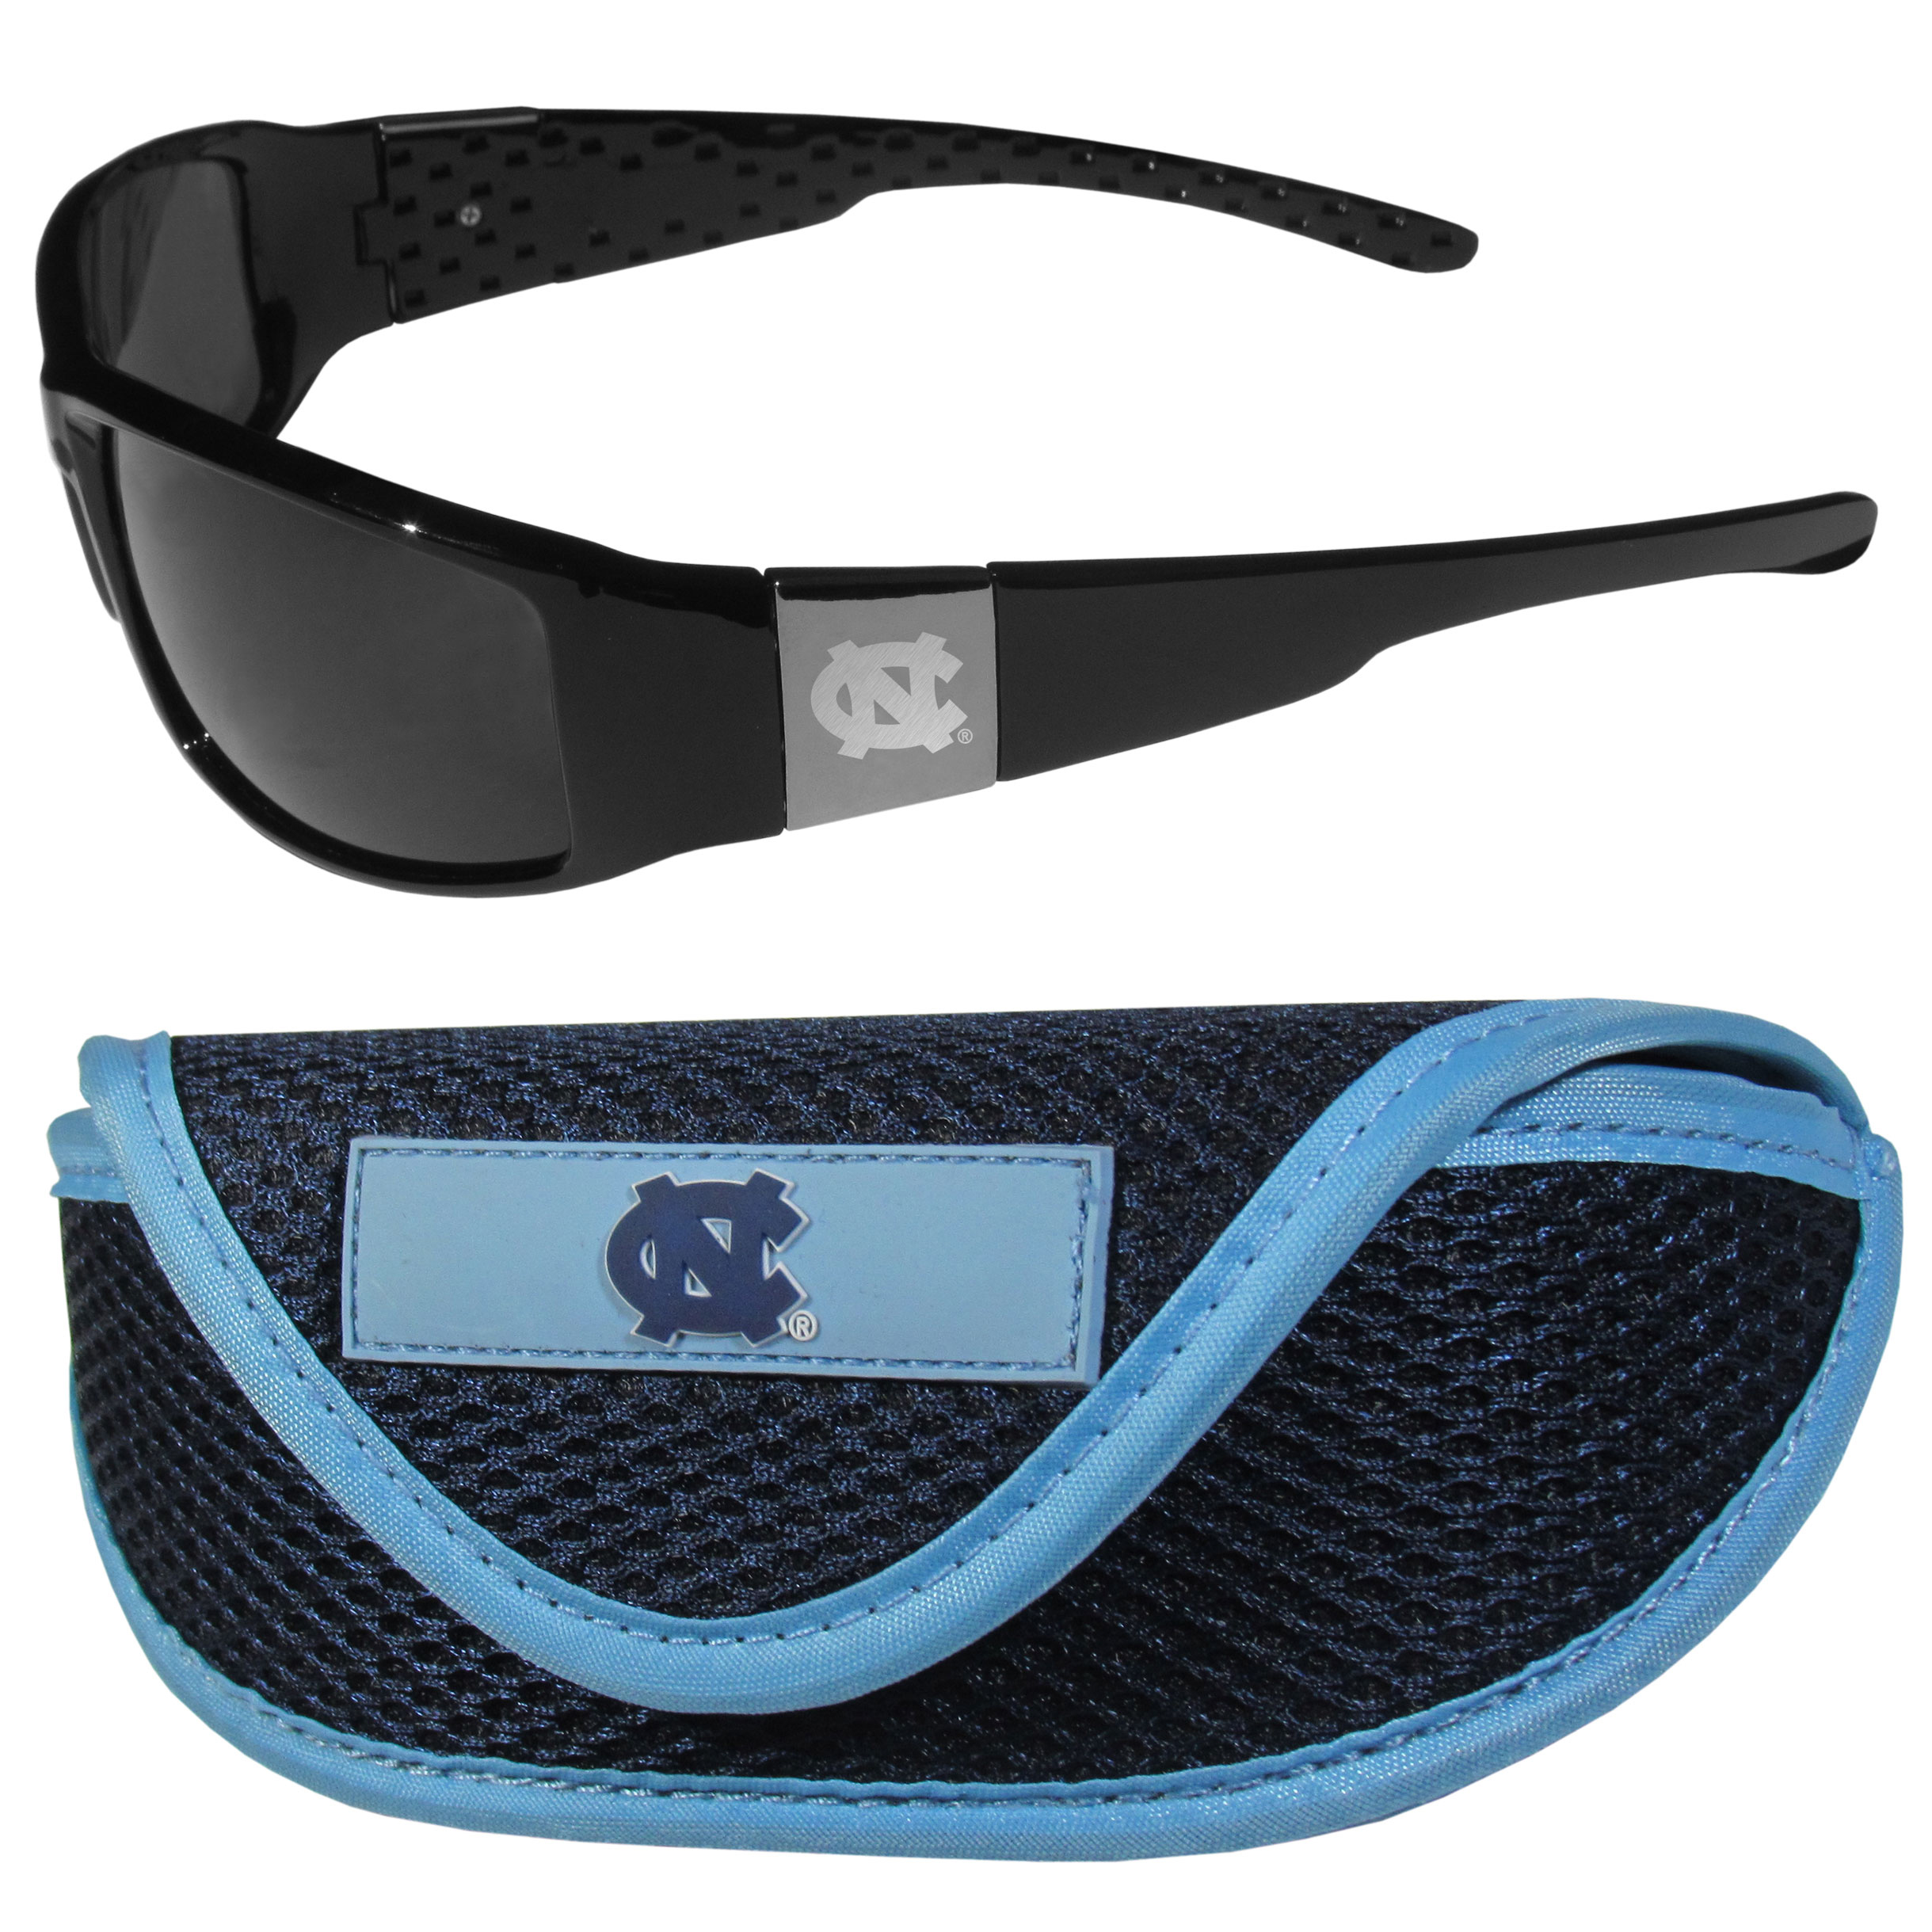 N. Carolina Tar Heels Chrome Wrap Sunglasses and Sport Carrying Case - These designer inspired frames have a sleek look in all black with high-polish chrome N. Carolina Tar Heels shields on each arm with an etched logo. The shades are perfect any outdoor activity like; golfing, driving, hiking, fishing or cheering on the team at a tailgating event or an at home game day BBQ with a lens rating of 100% UVA/UVB for maximum UV protection. The high-quality frames are as durable as they are fashionable and with their classic look they are perfect fan accessory that can be worn everyday for every occasion. The shades come with a zippered hard shell case to keep your sunglasses safe.